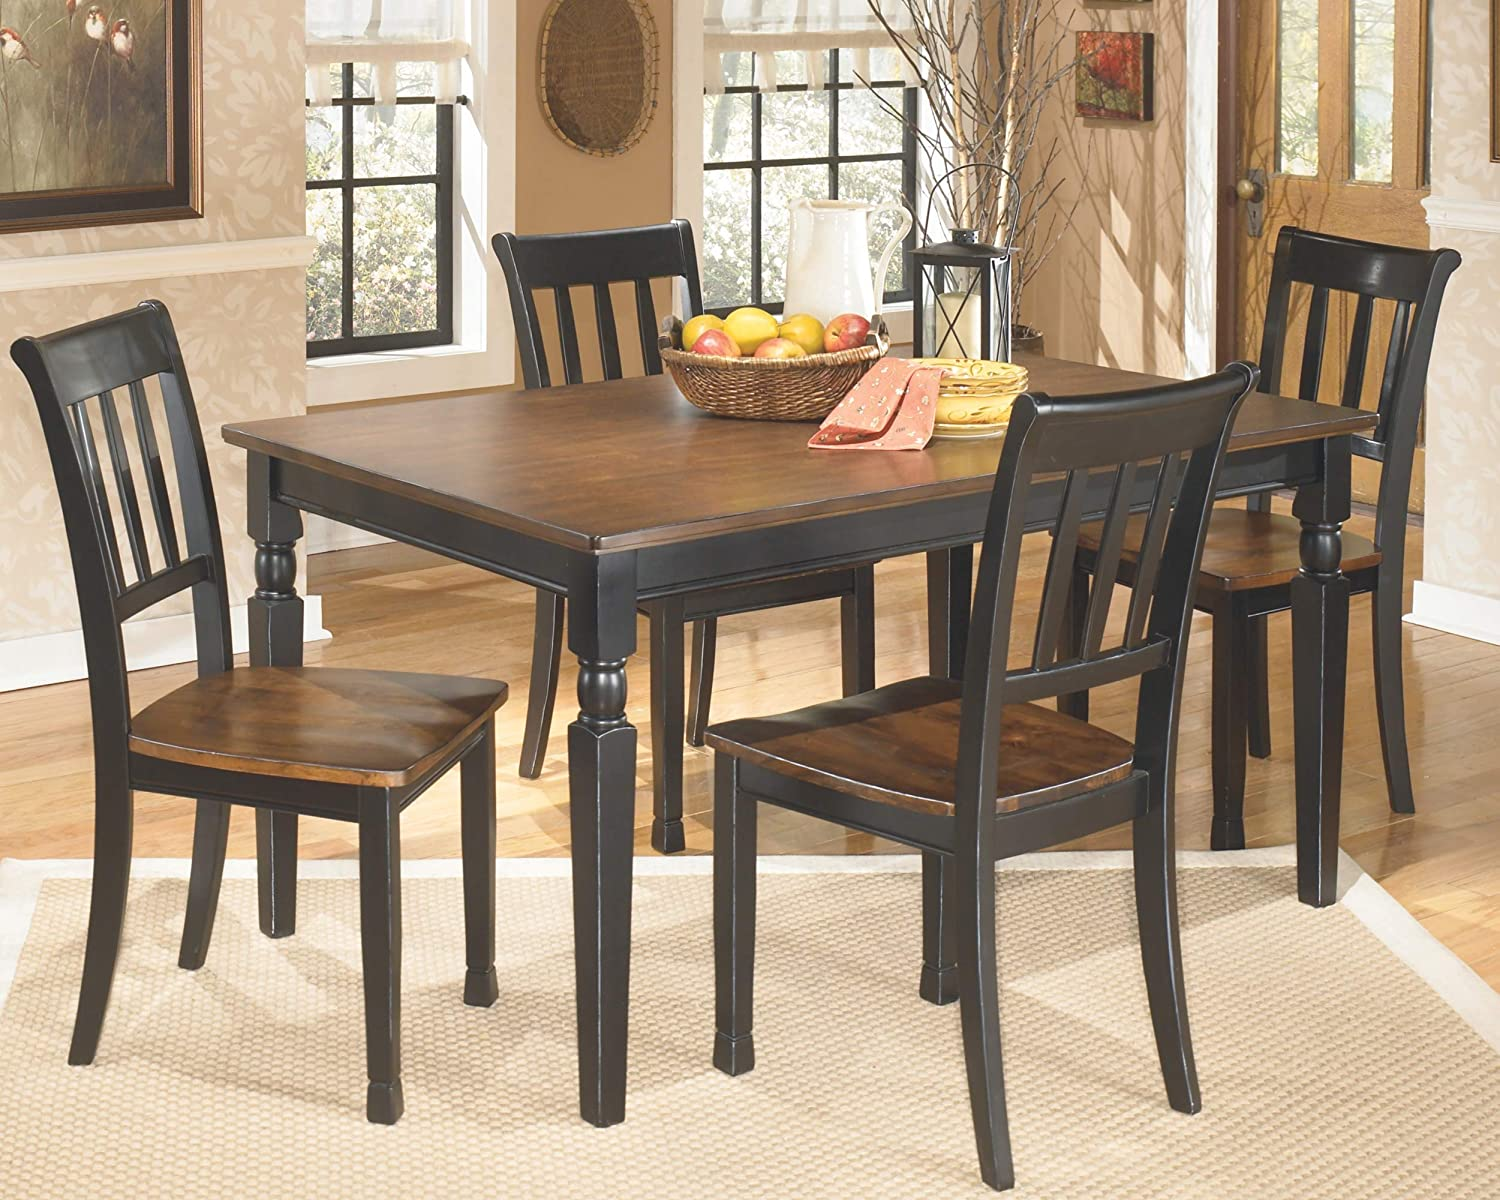 Ashley Furniture Signature Design - Owingsville Dining Room Table - Rectangular - Black and Brown